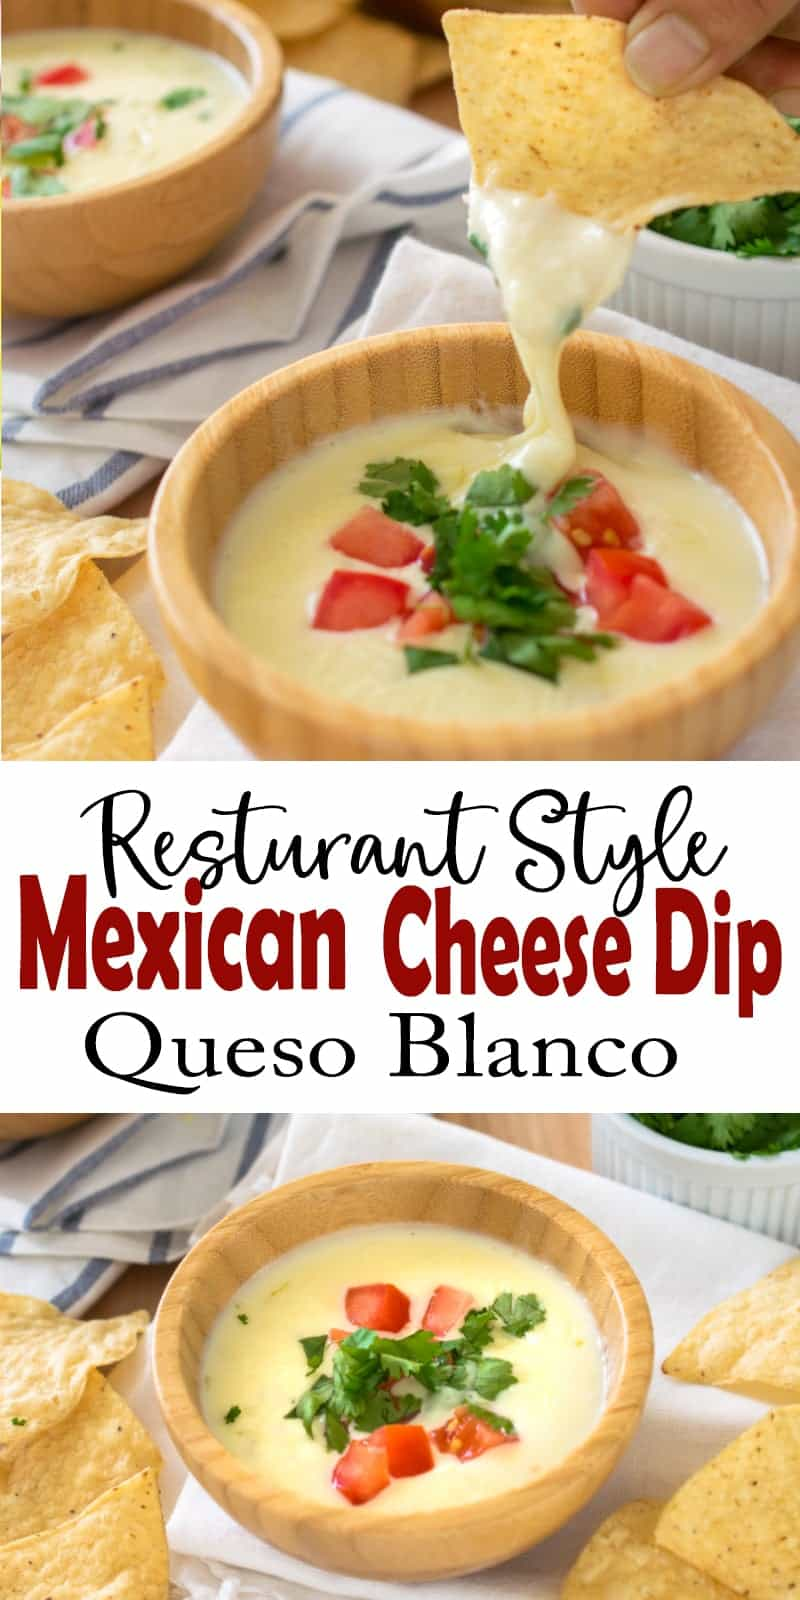 Close up of bowl of queso blanco and chip dipping into queso blanco with title.